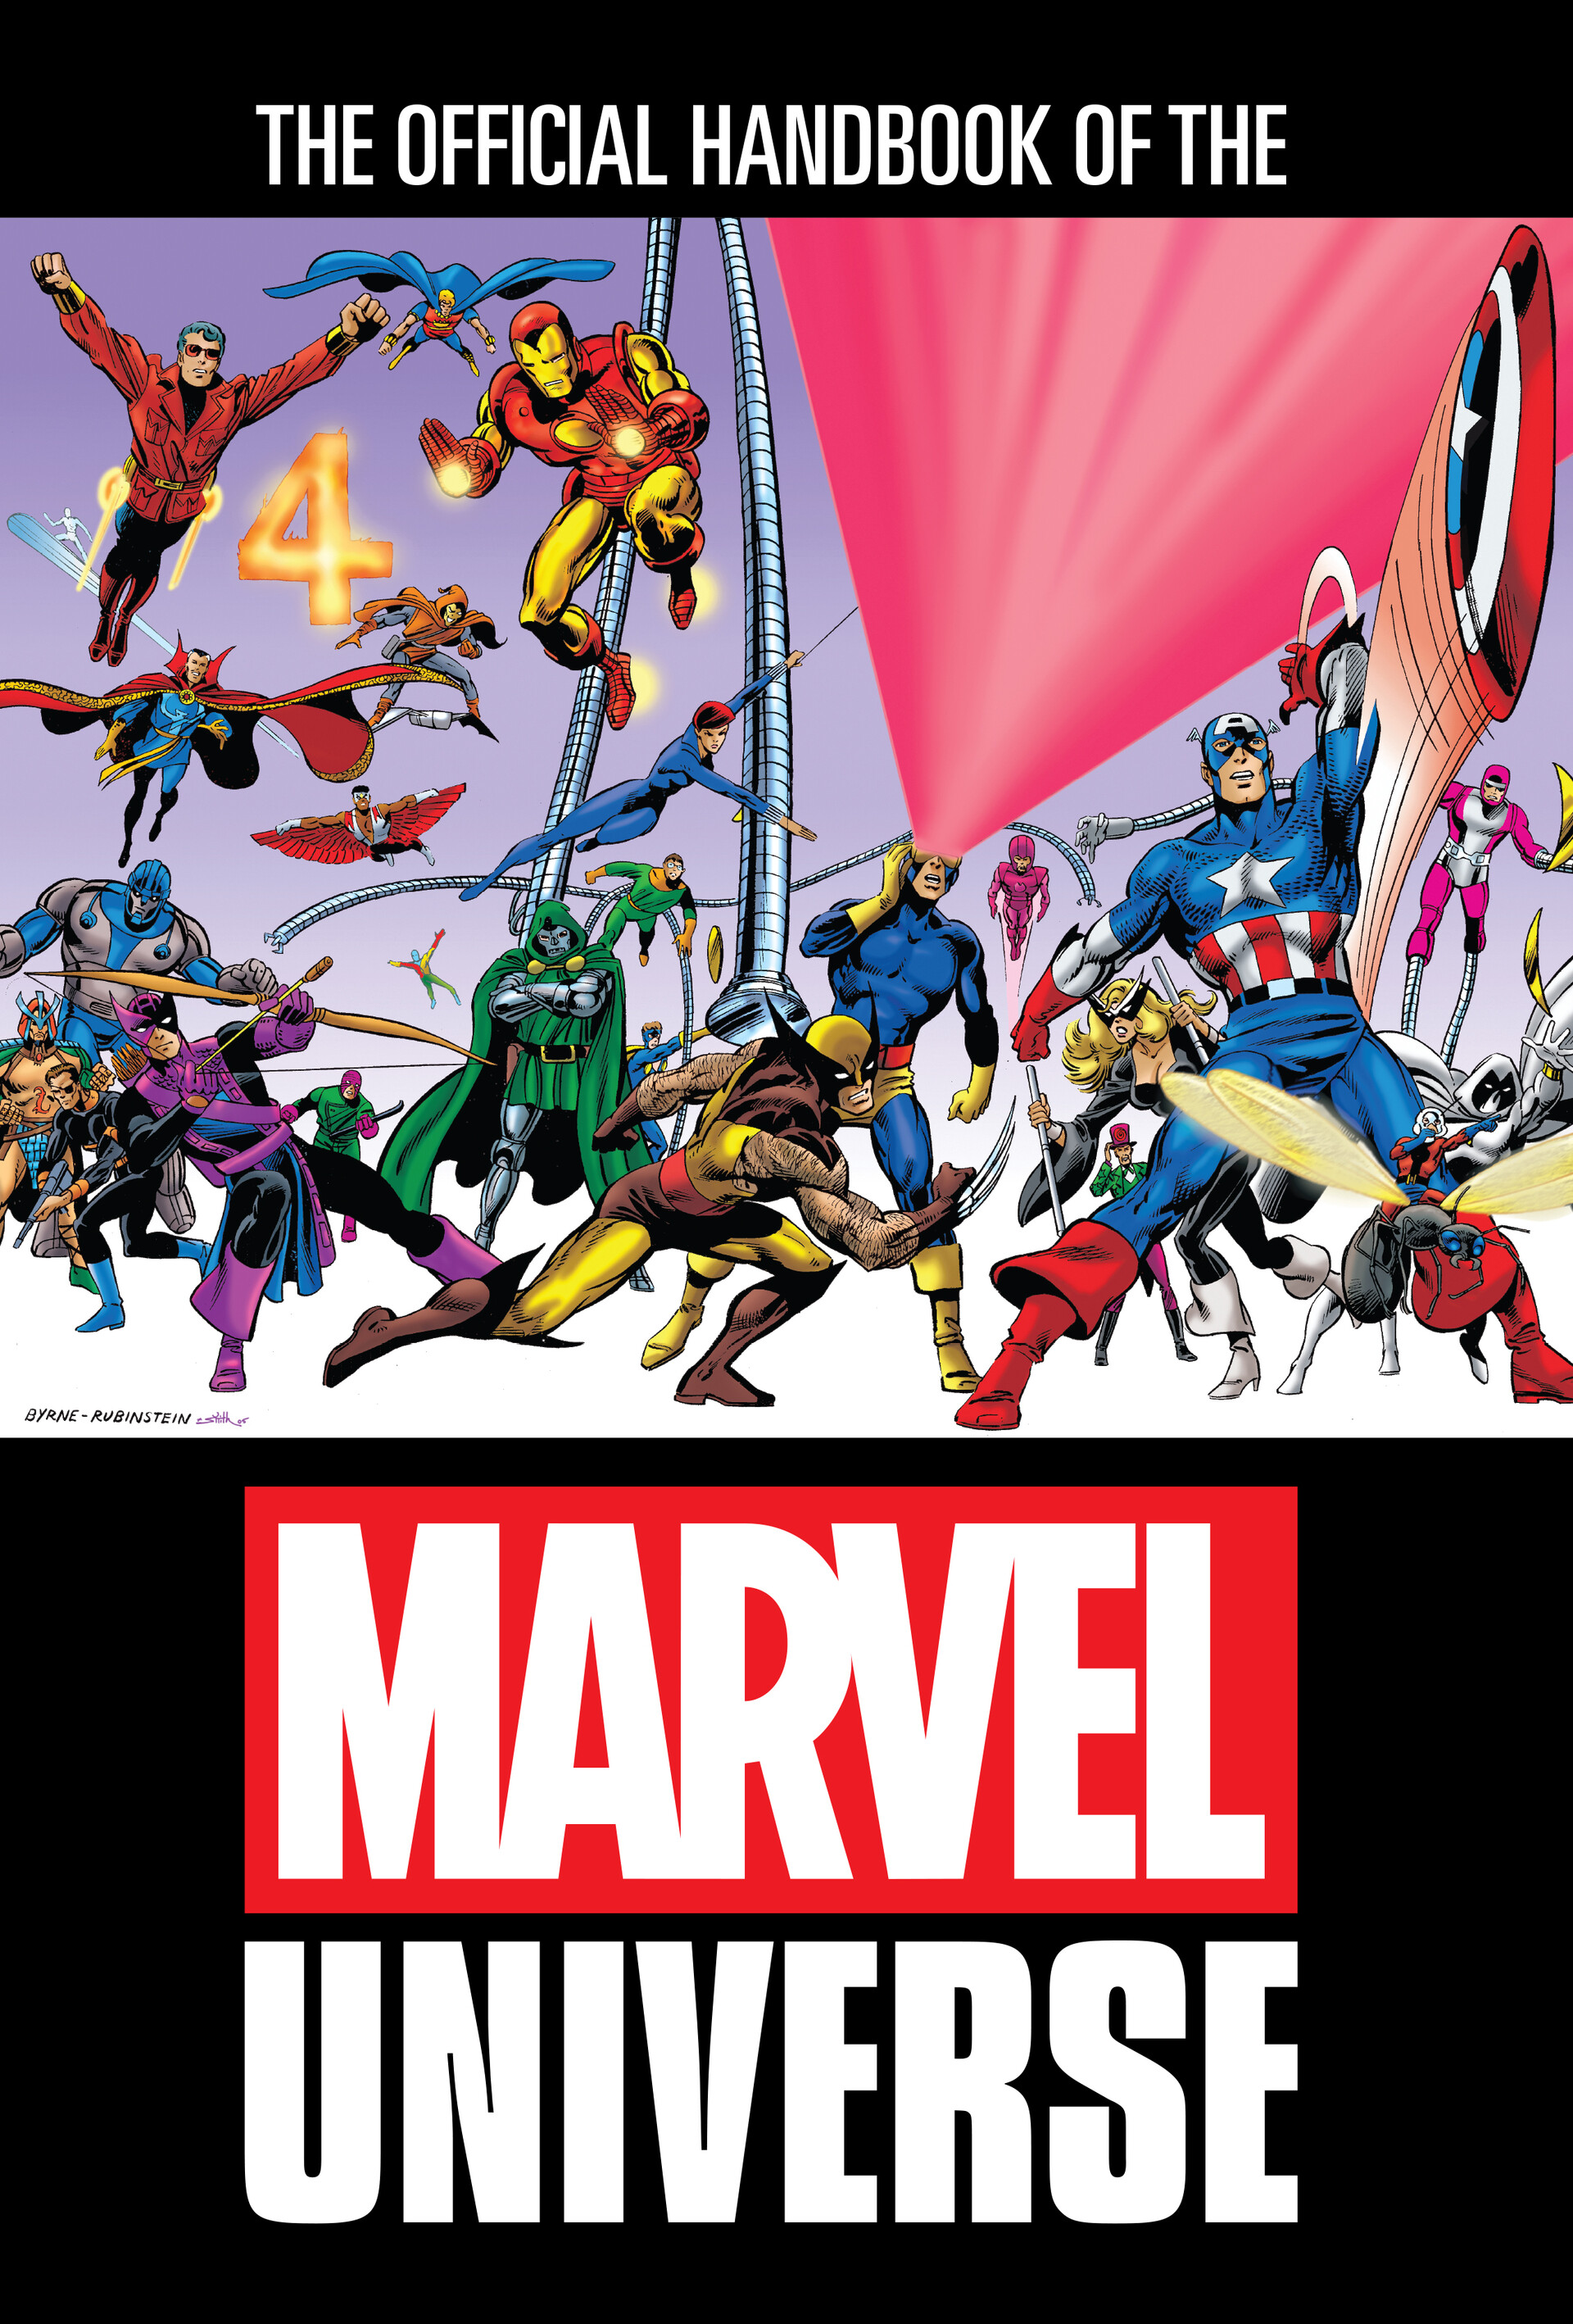 The Official Handbook of the Marvel Universe Cover